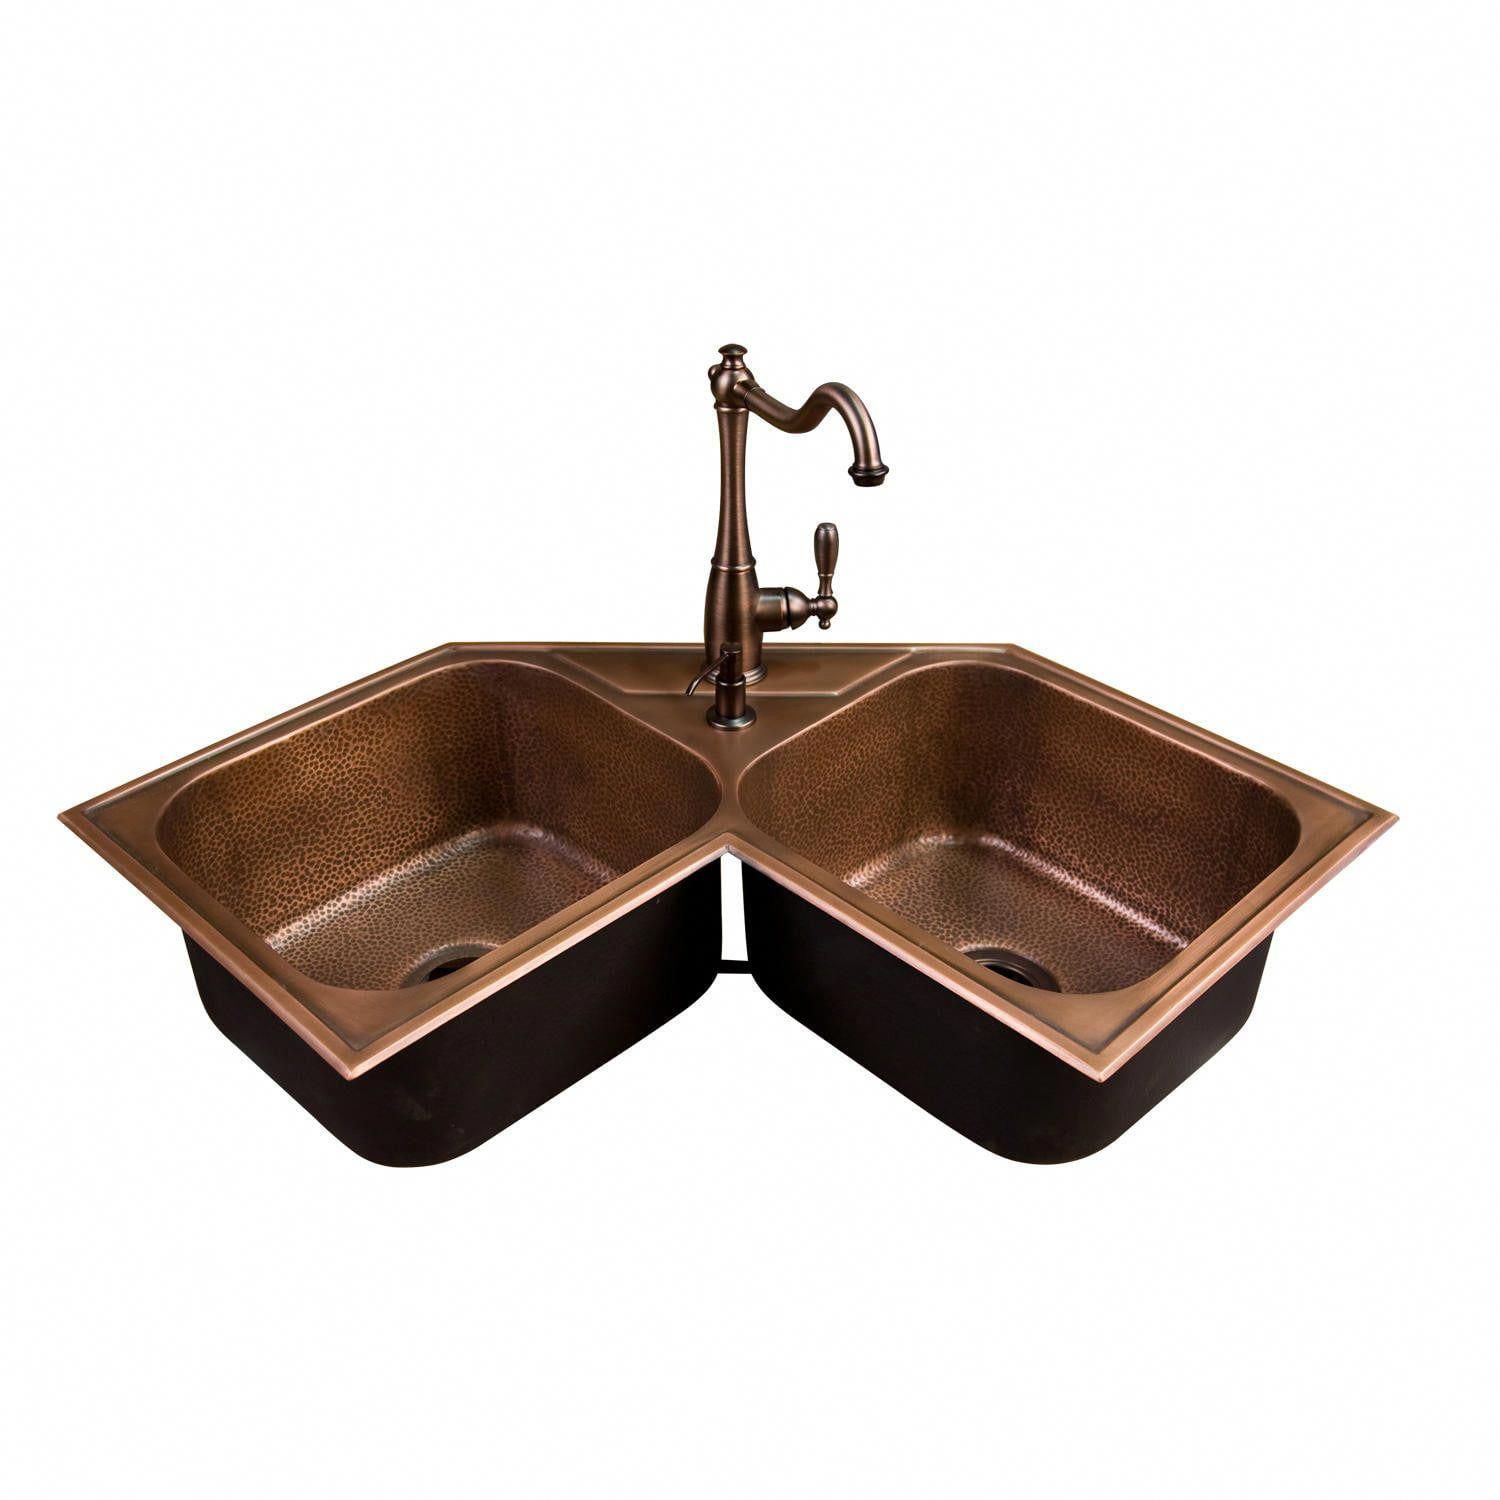 Hammered Copper Double Bowl Drop In Corner Sink In 2021 Corner Sink Kitchen Copper Kitchen Sink Corner Sink